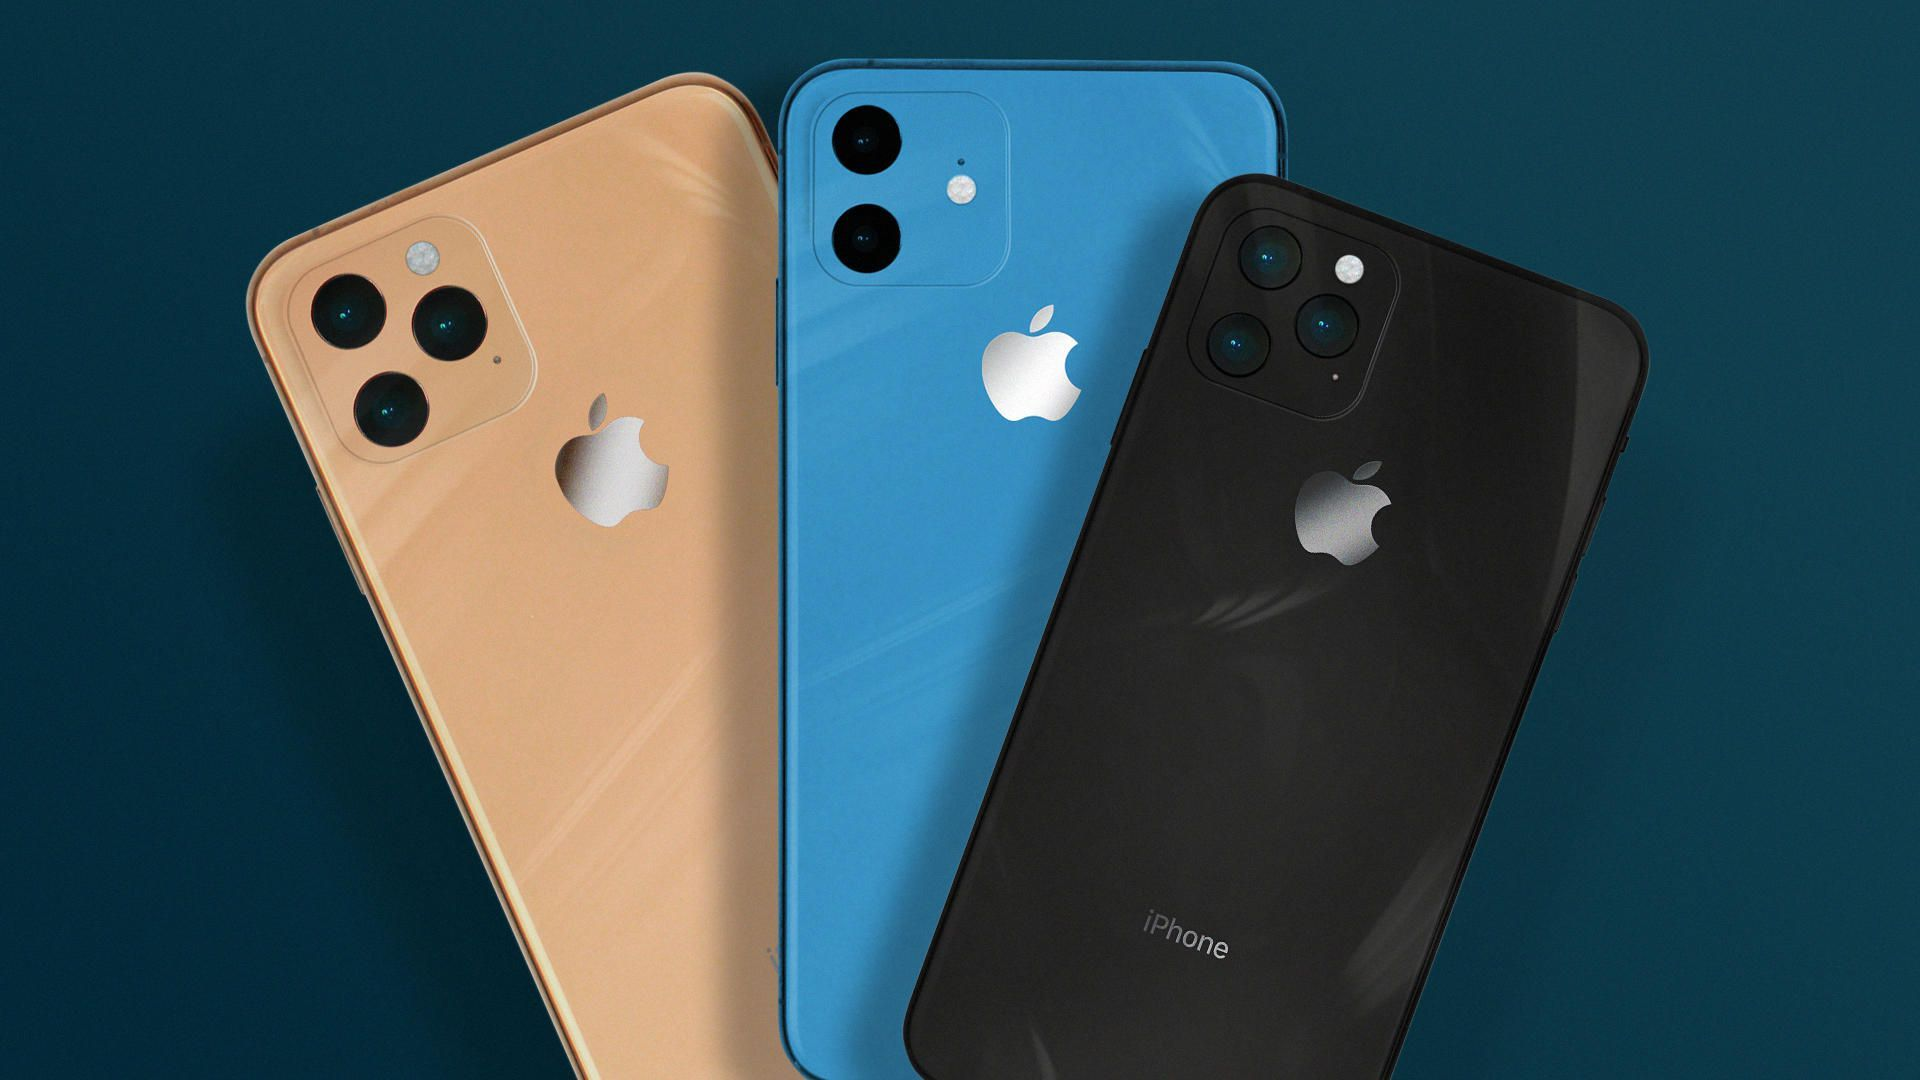 iPhone 11 launch is coming. Here's what we expect